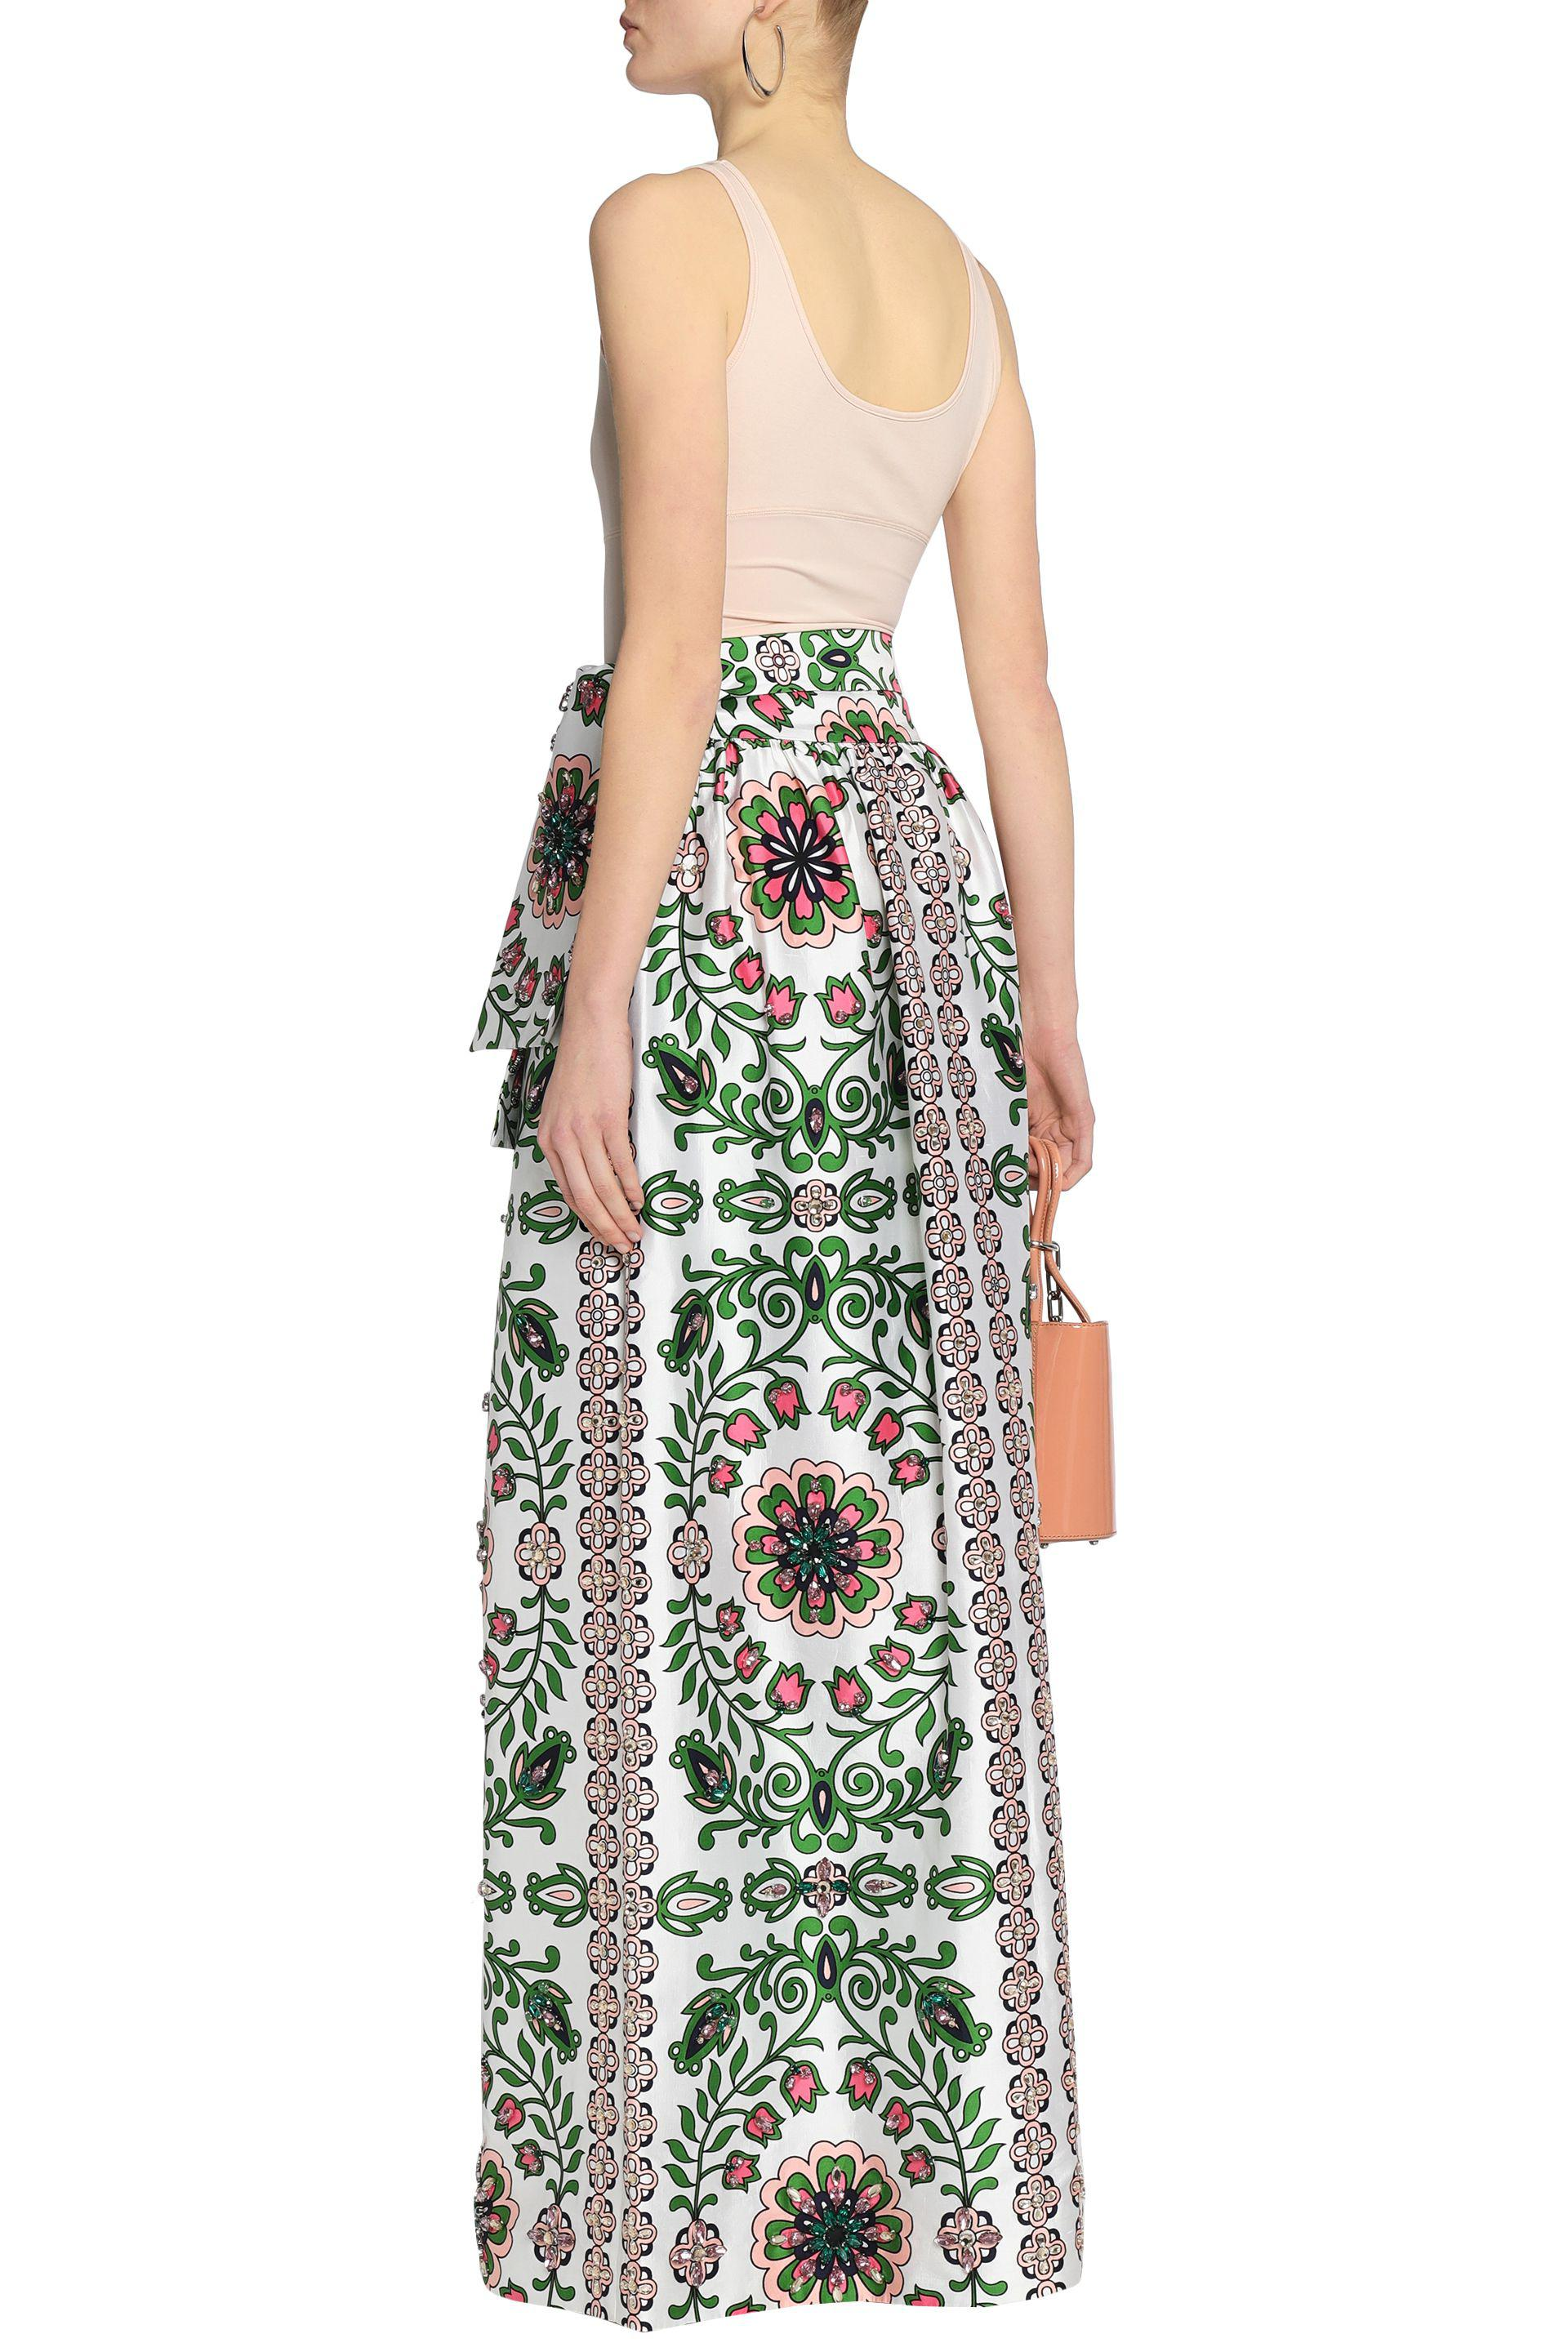 Tory Burch Woman Crystal-embellished Printed Silk-satin Maxi Skirt White Size 10 Tory Burch vXtGUlV3